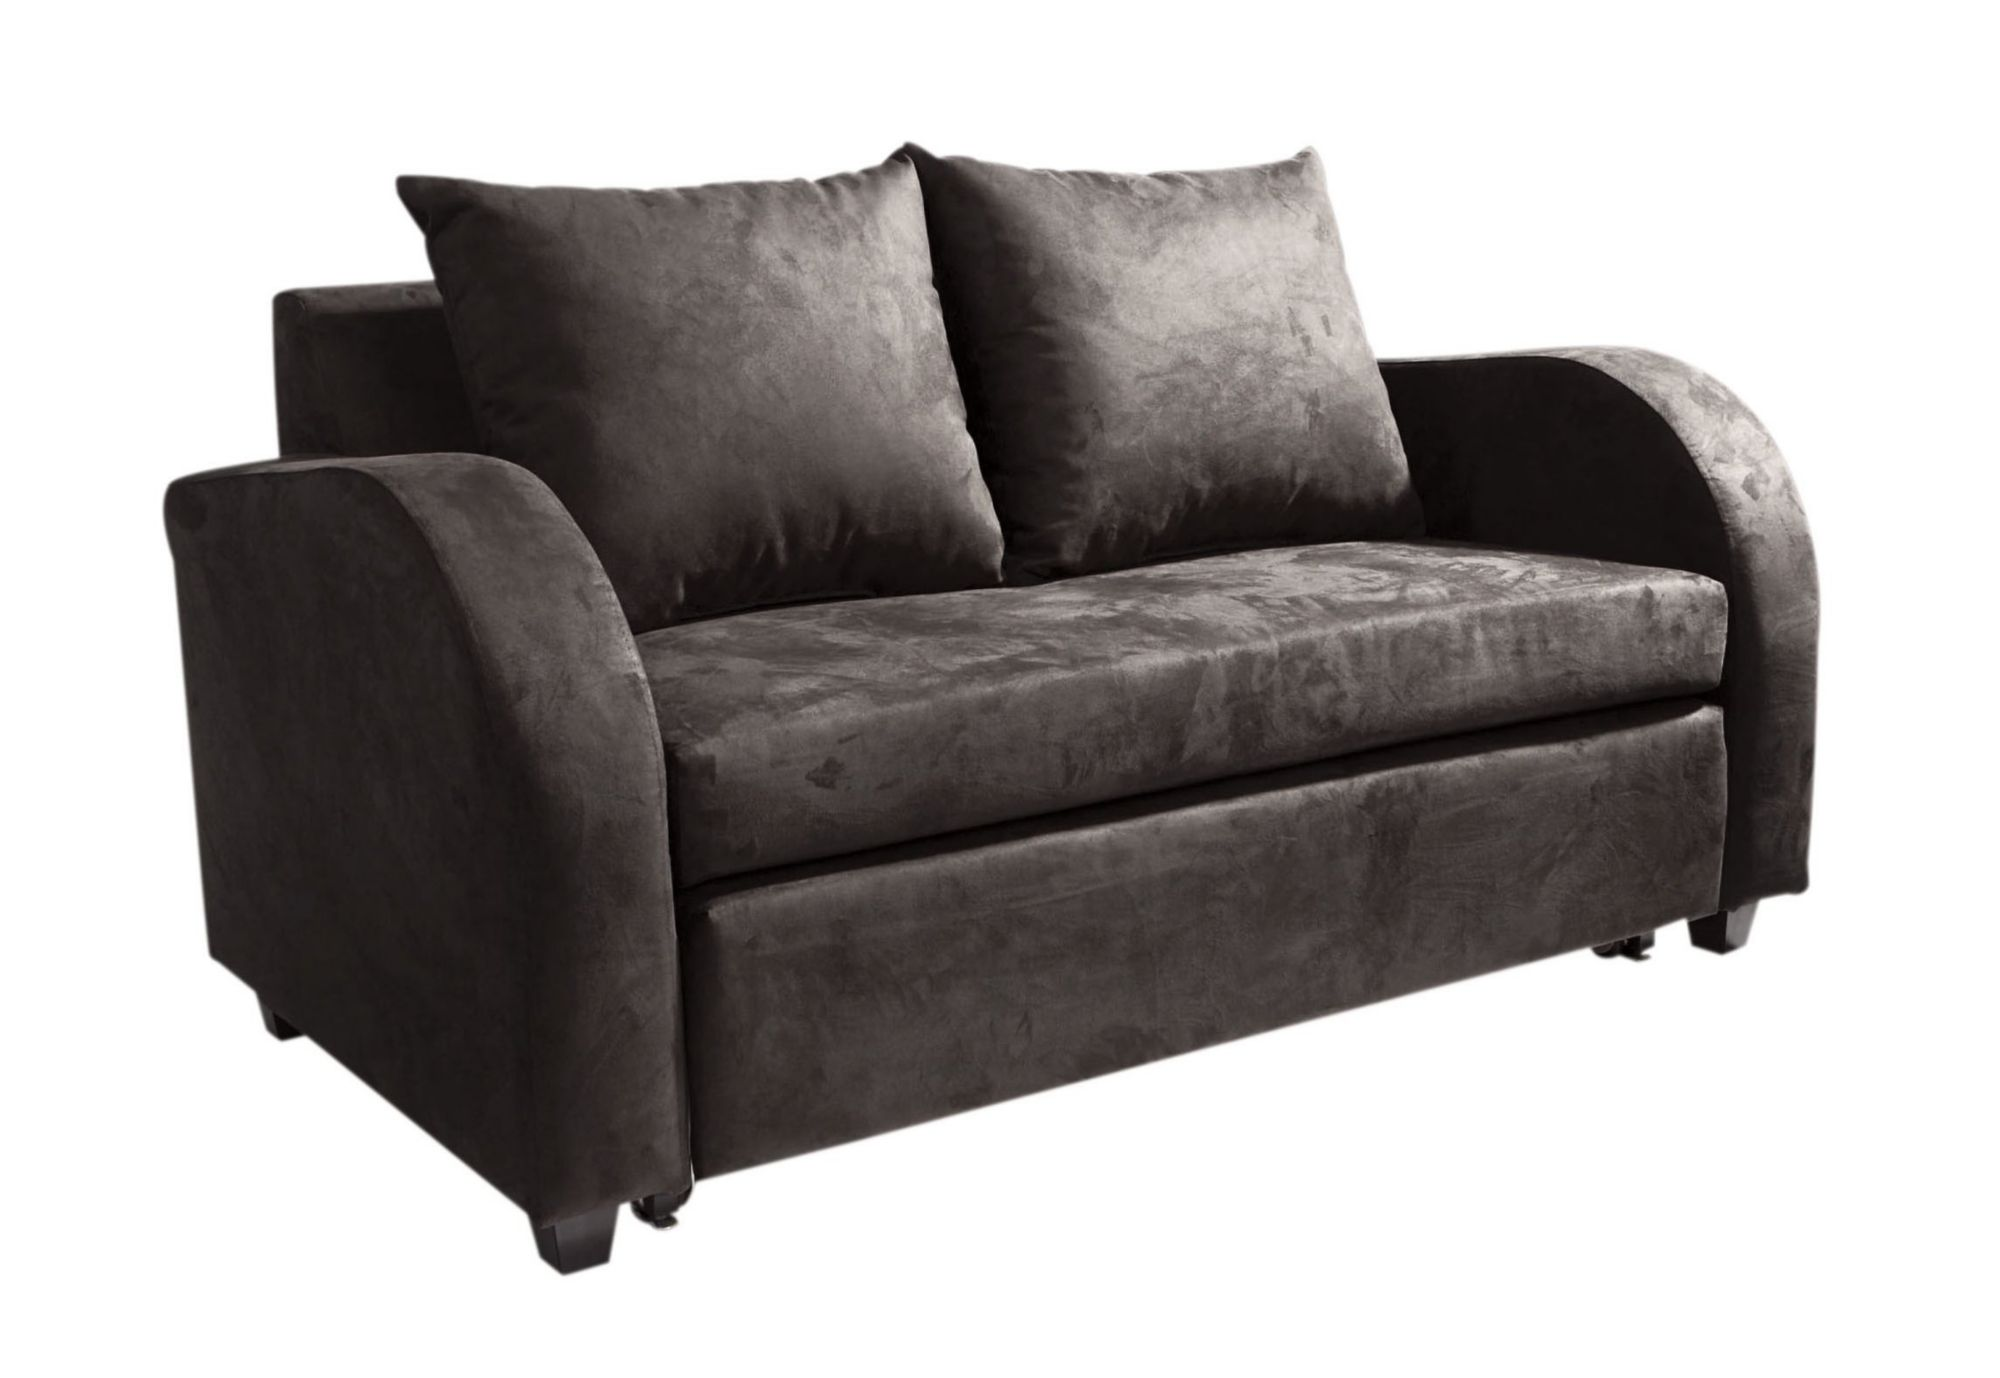 schlafsofa sofort lieferbar g nstig kaufen. Black Bedroom Furniture Sets. Home Design Ideas